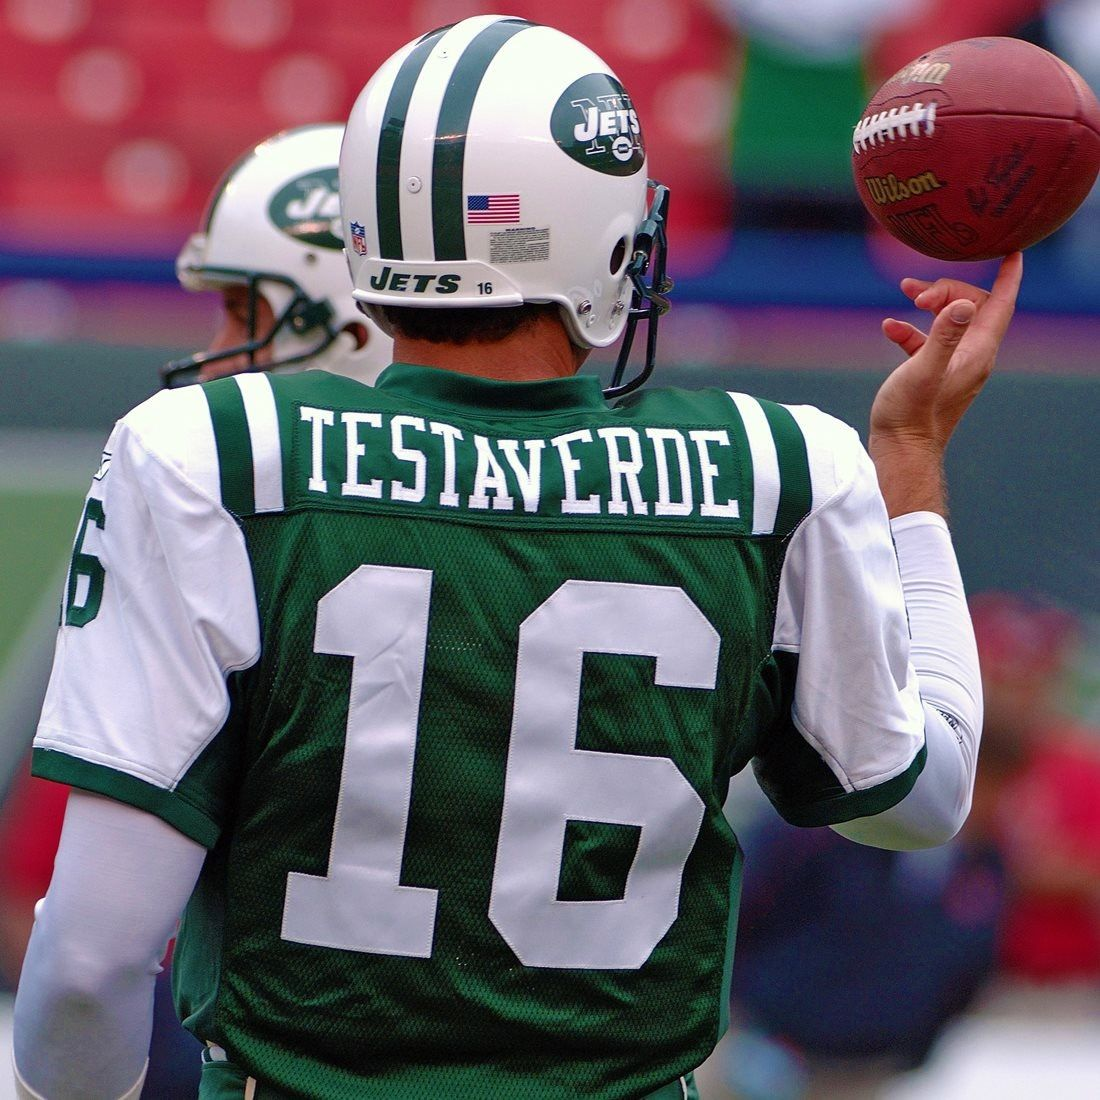 Testaverde is warming up lol #MNF #NYJ <br>http://pic.twitter.com/Dt1Xf2Yzws